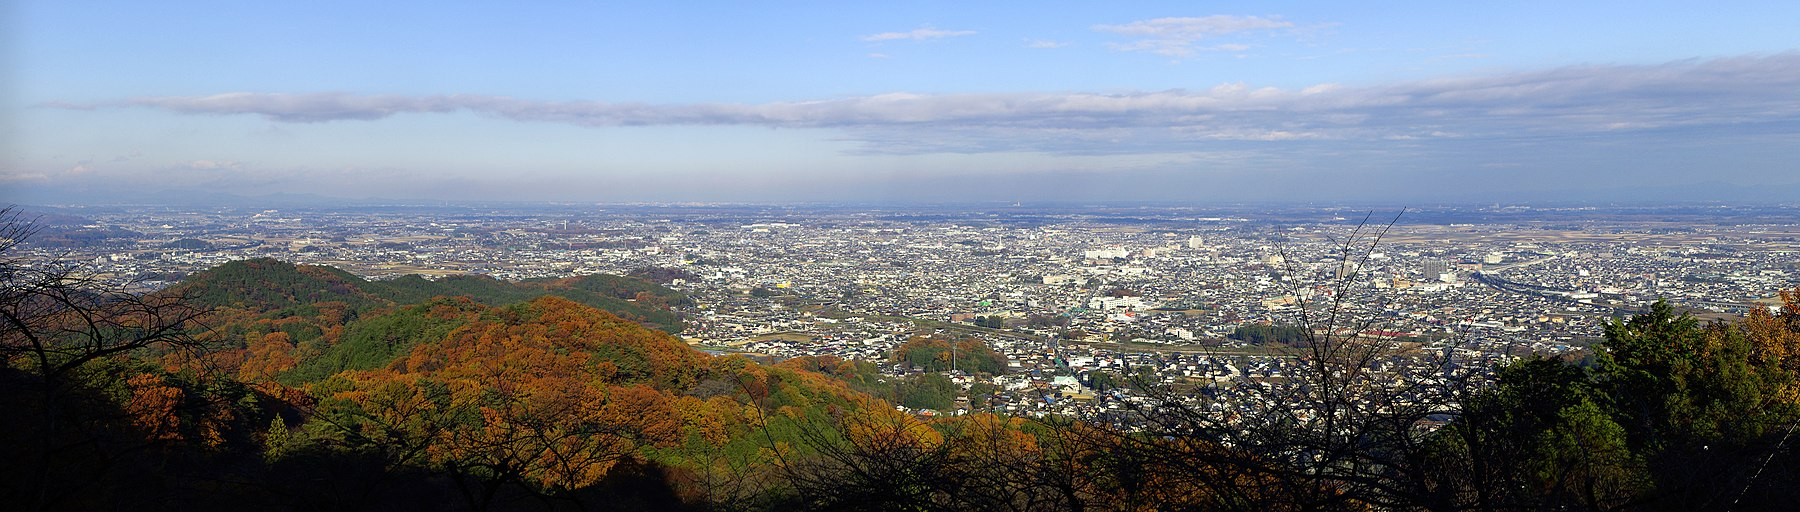 Tochigi-panorama.jpg